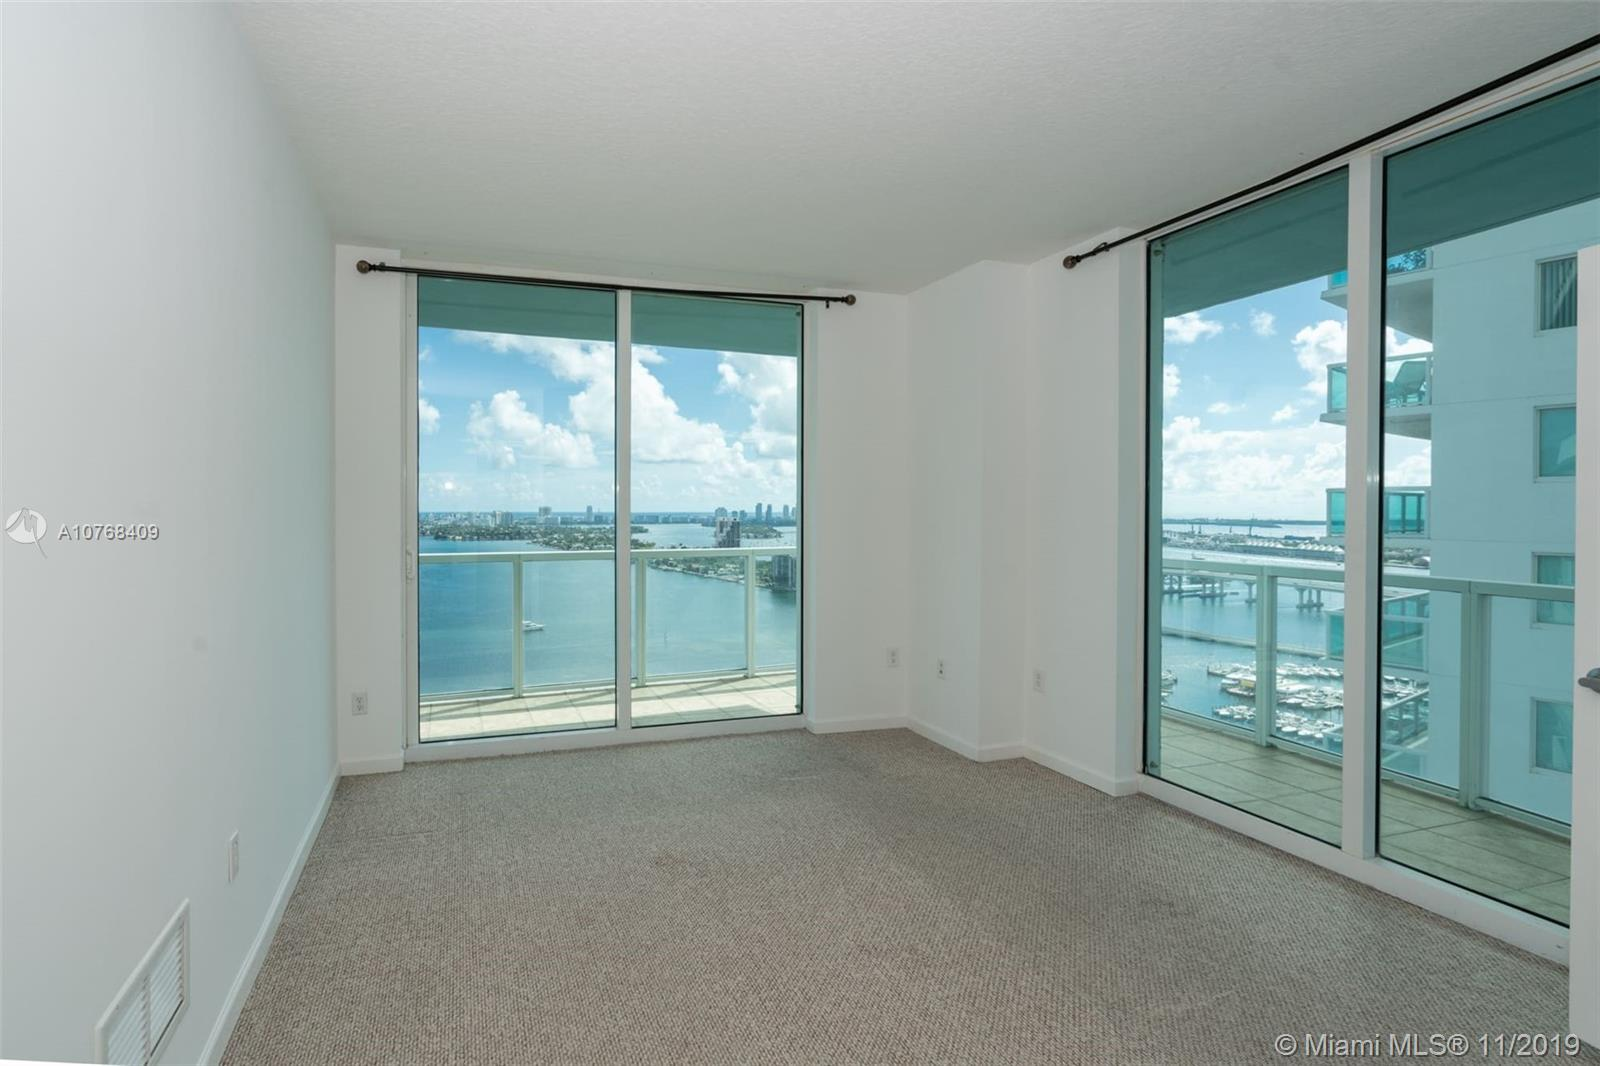 Photo of Quantum On The Bay Apt 3001